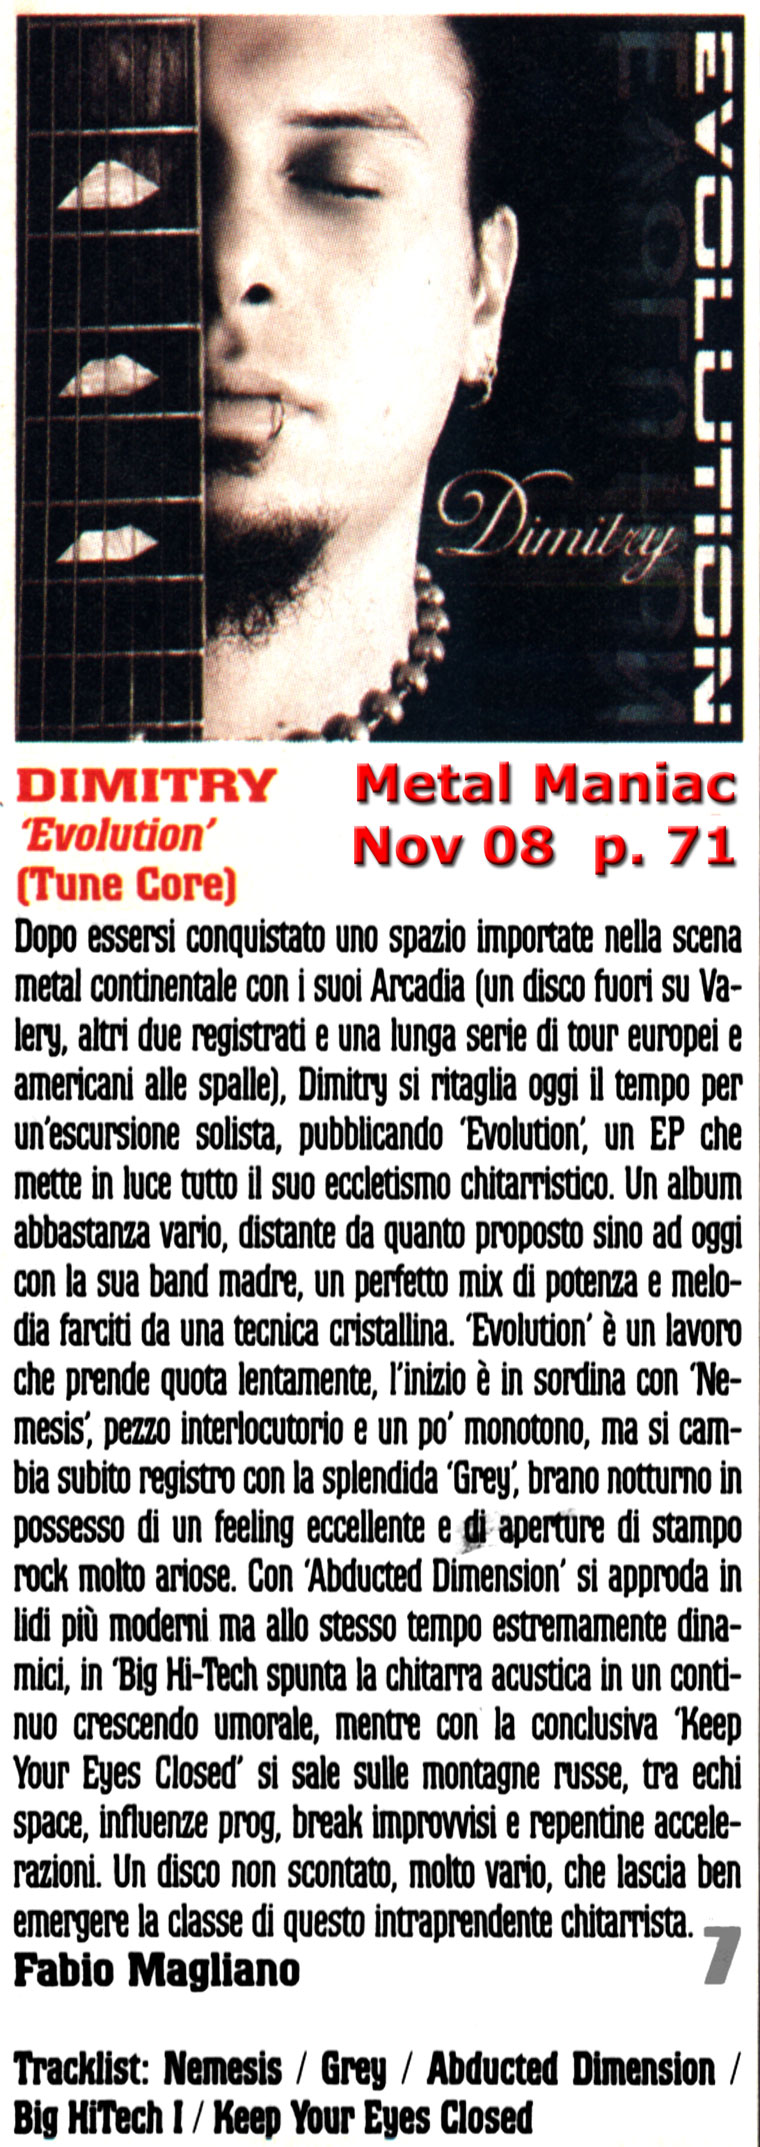 Evolution Review on Metal Maniac, Italy p. 71 - November 2008